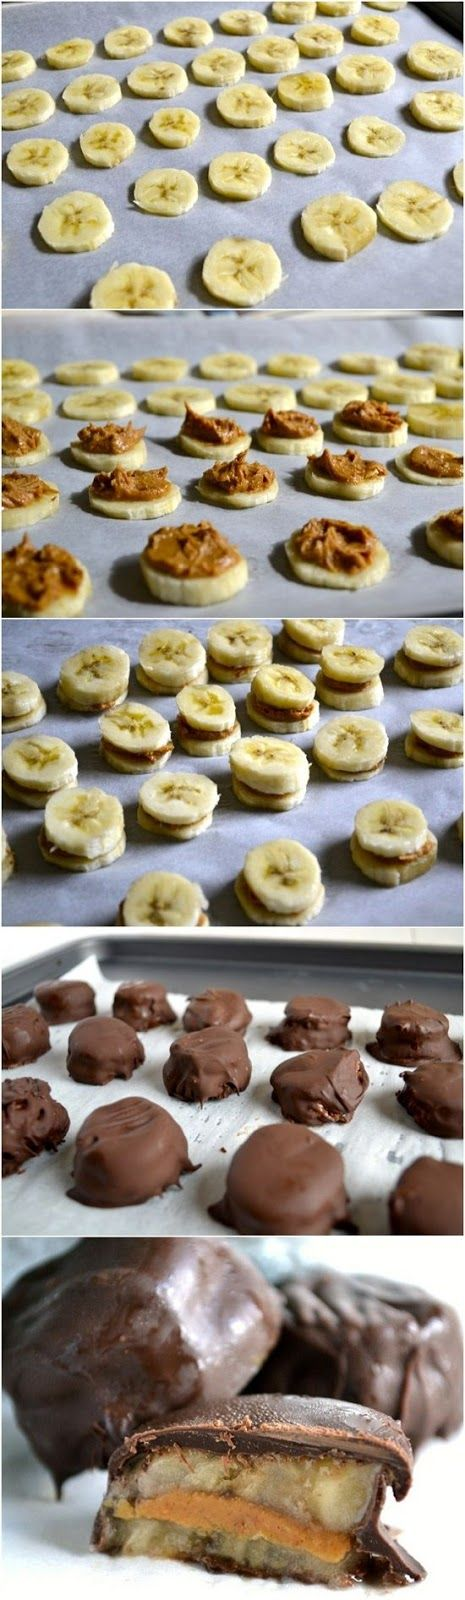 Best Healthy Food: Frozen chocolate peanut butter banana bites Perfect healthy dessert for hot summer nights, okay, any night